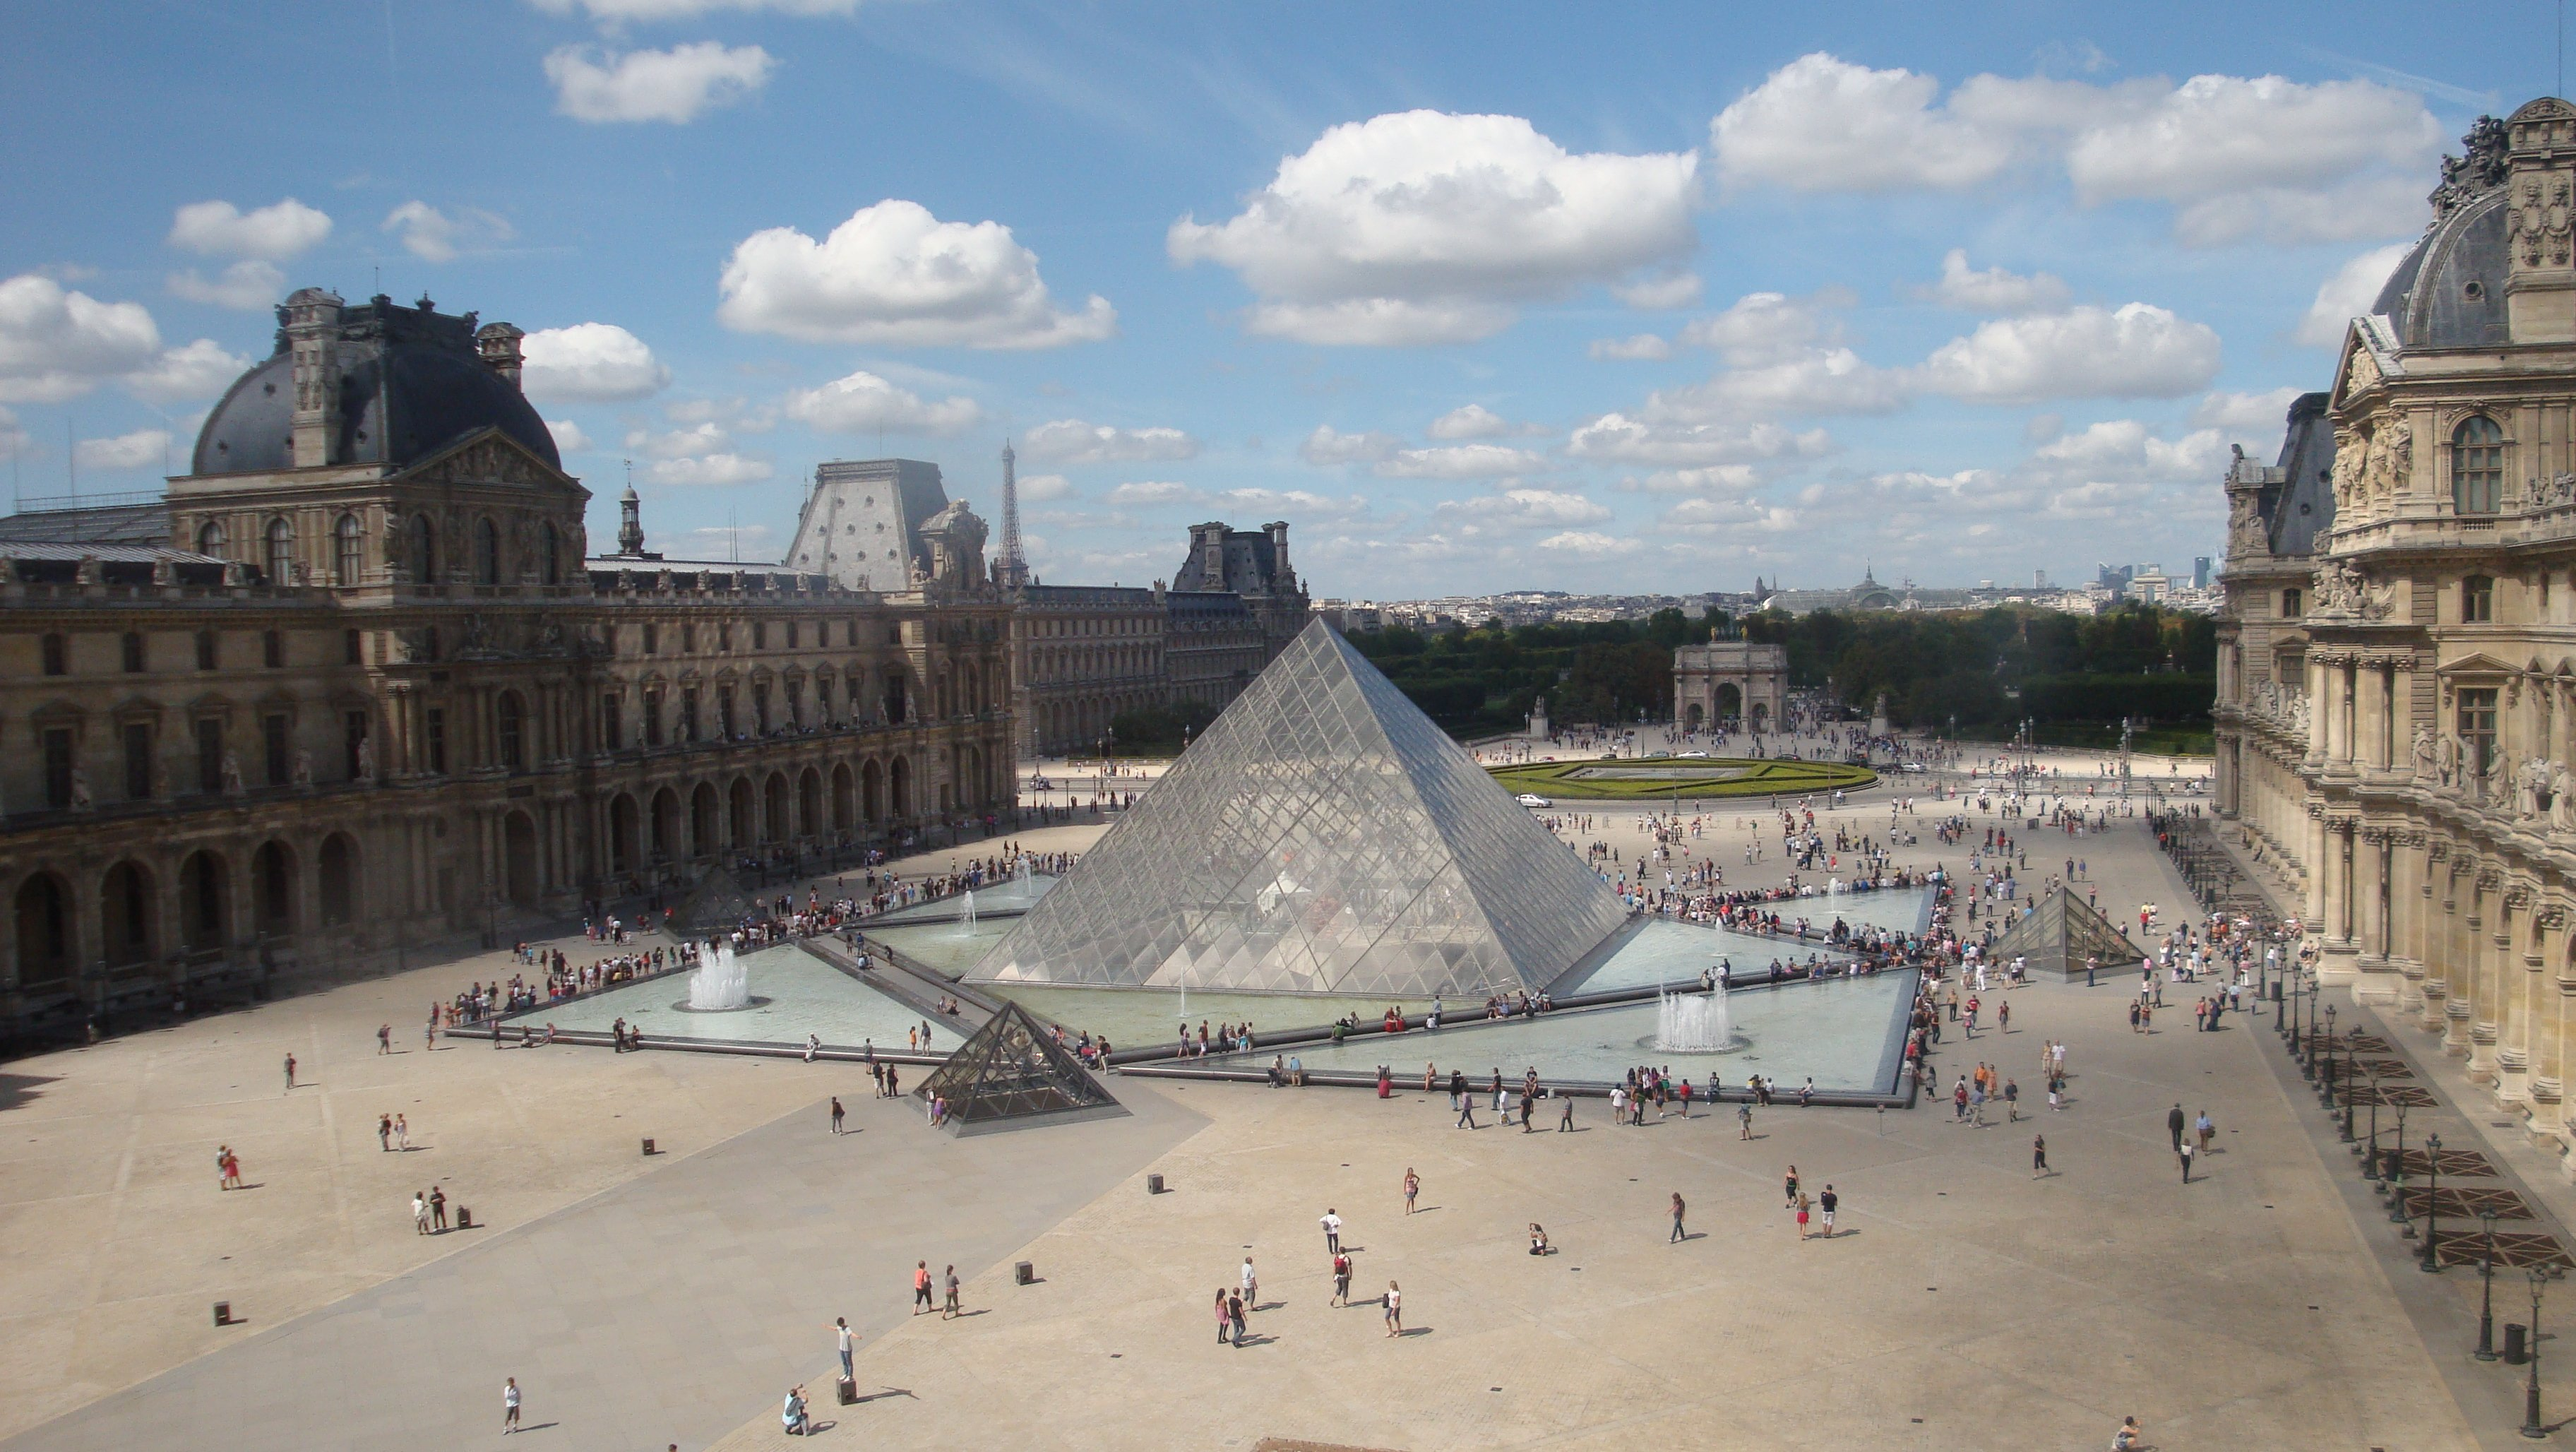 Louvre 4k Wallpapers For Your Desktop Or Mobile Screen Free And Easy To Download